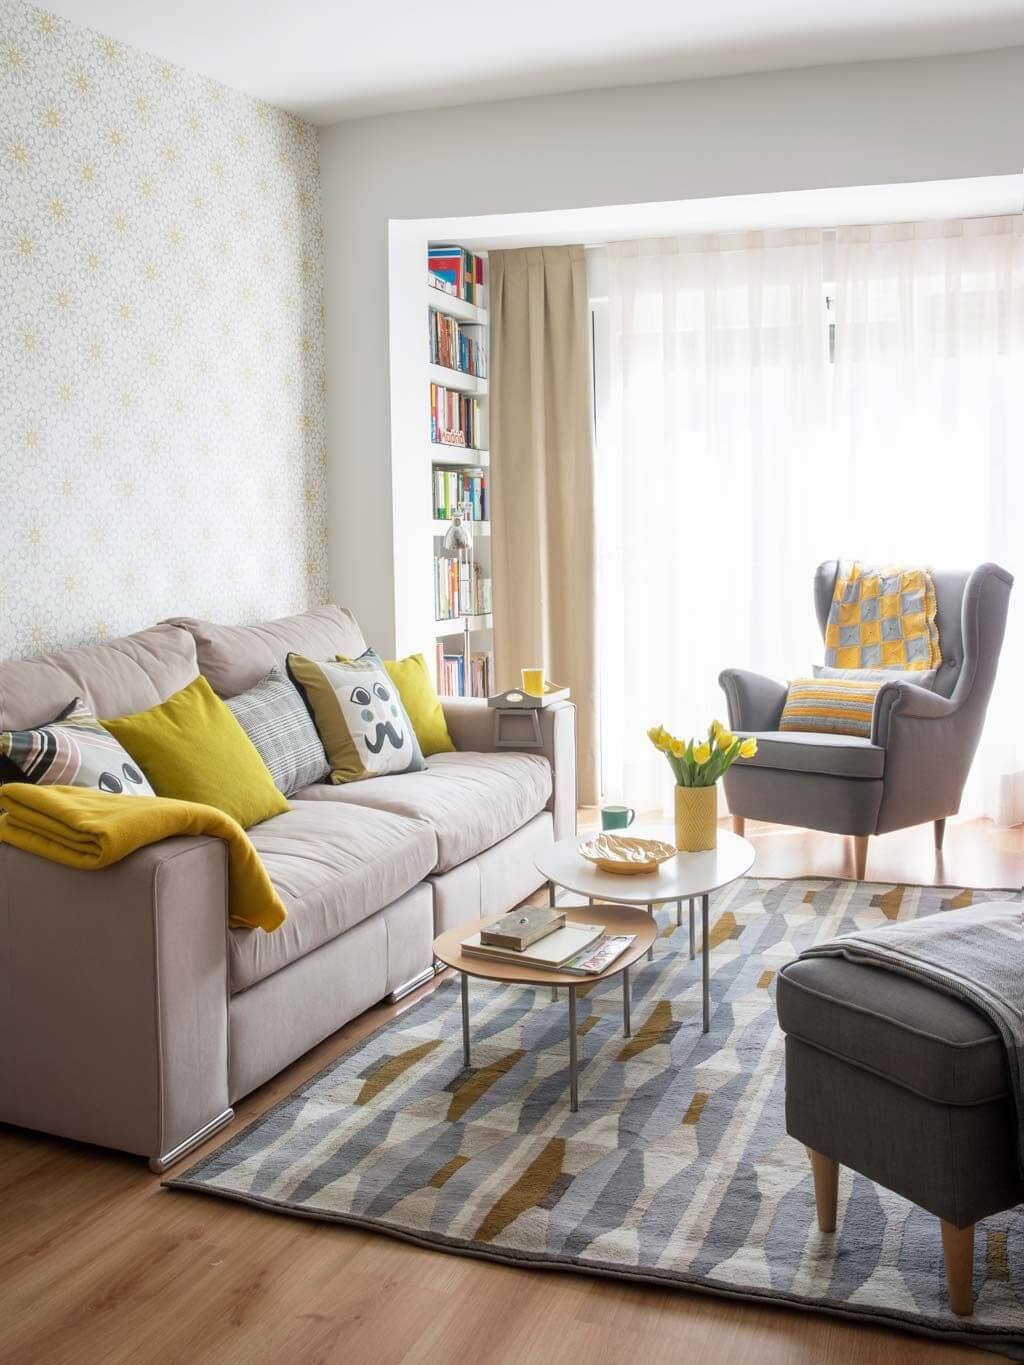 Small Living Room Decor Ideas 25 Best Small Living Room Decor and Design Ideas for 2019